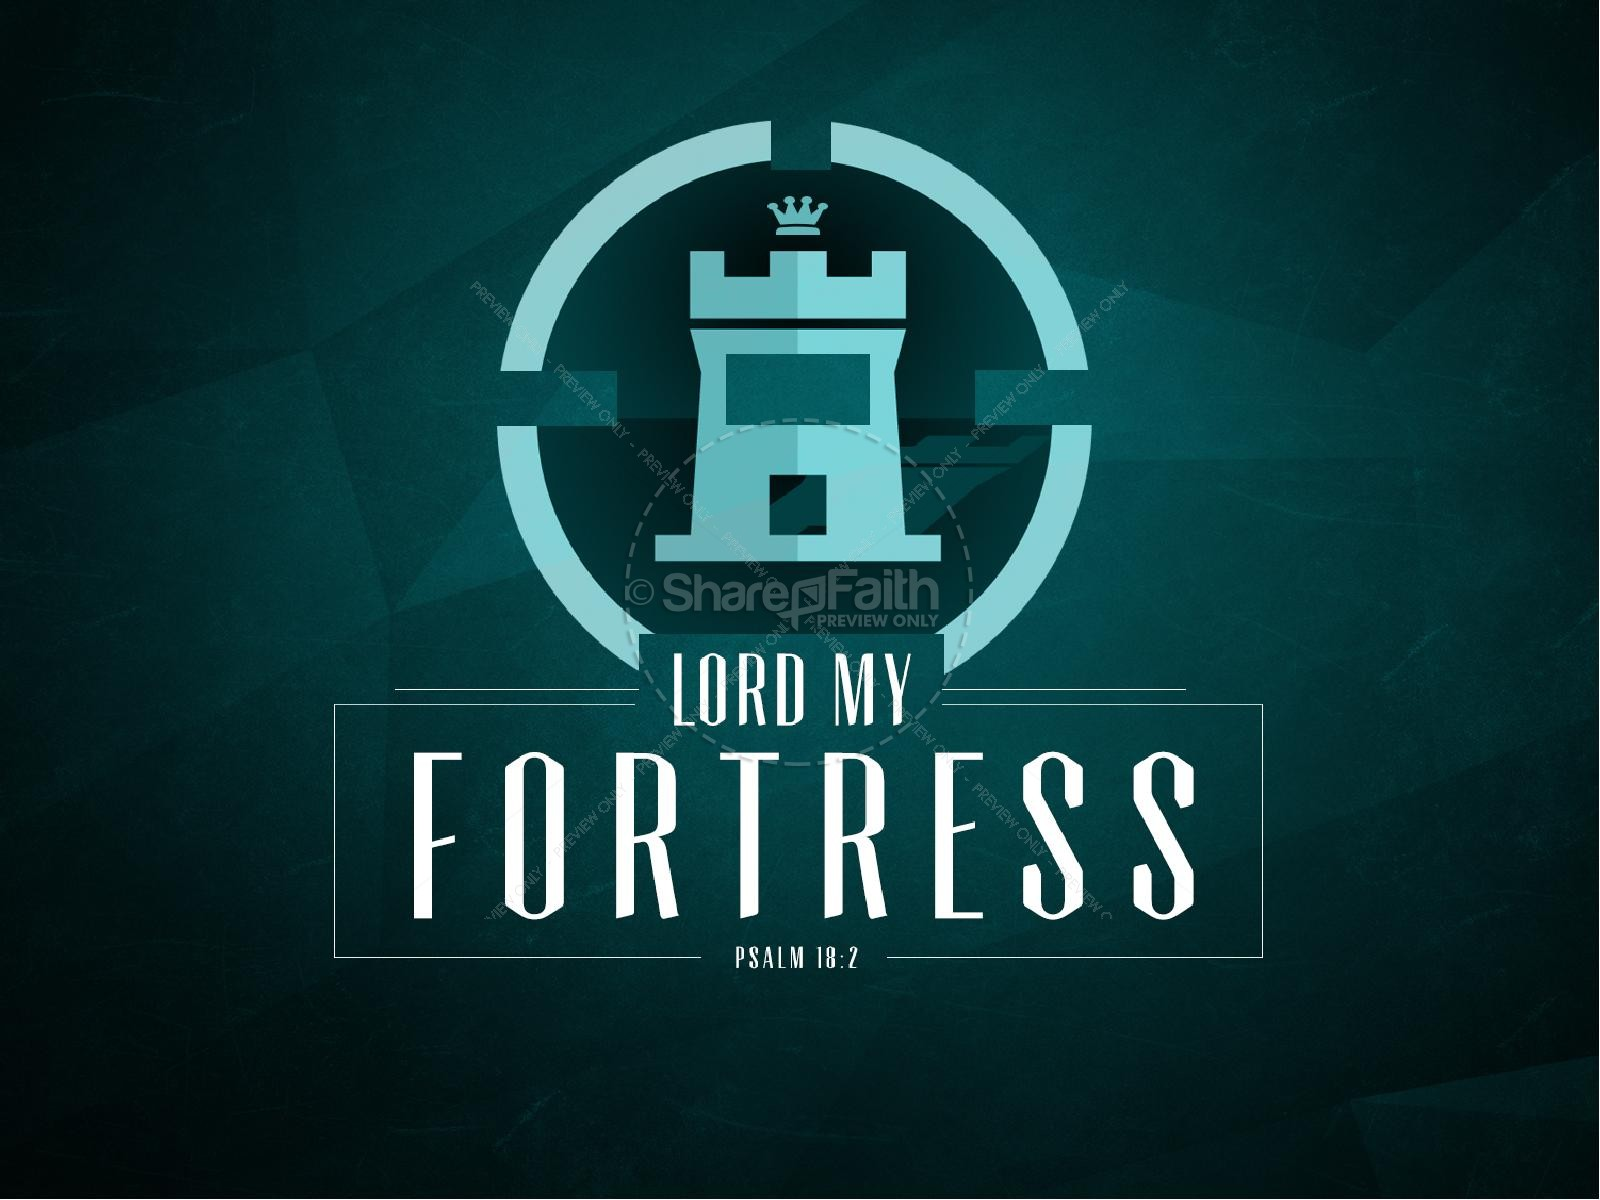 The Lord Is My Fortress Psalm 18